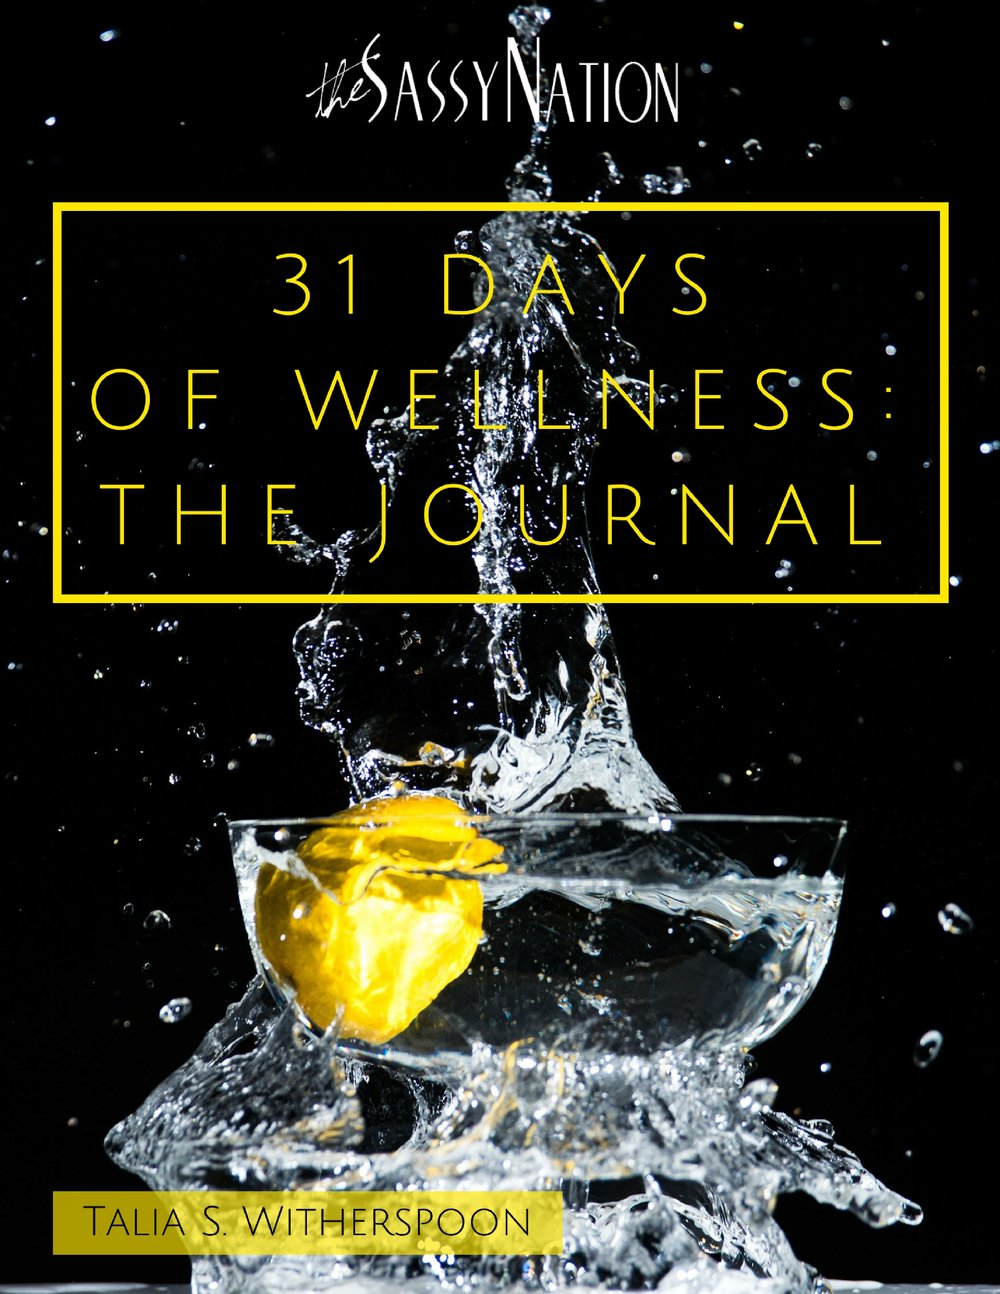 Download your 31 Days of Wellness Journal for just $15      - *free with Masterclass purchase.